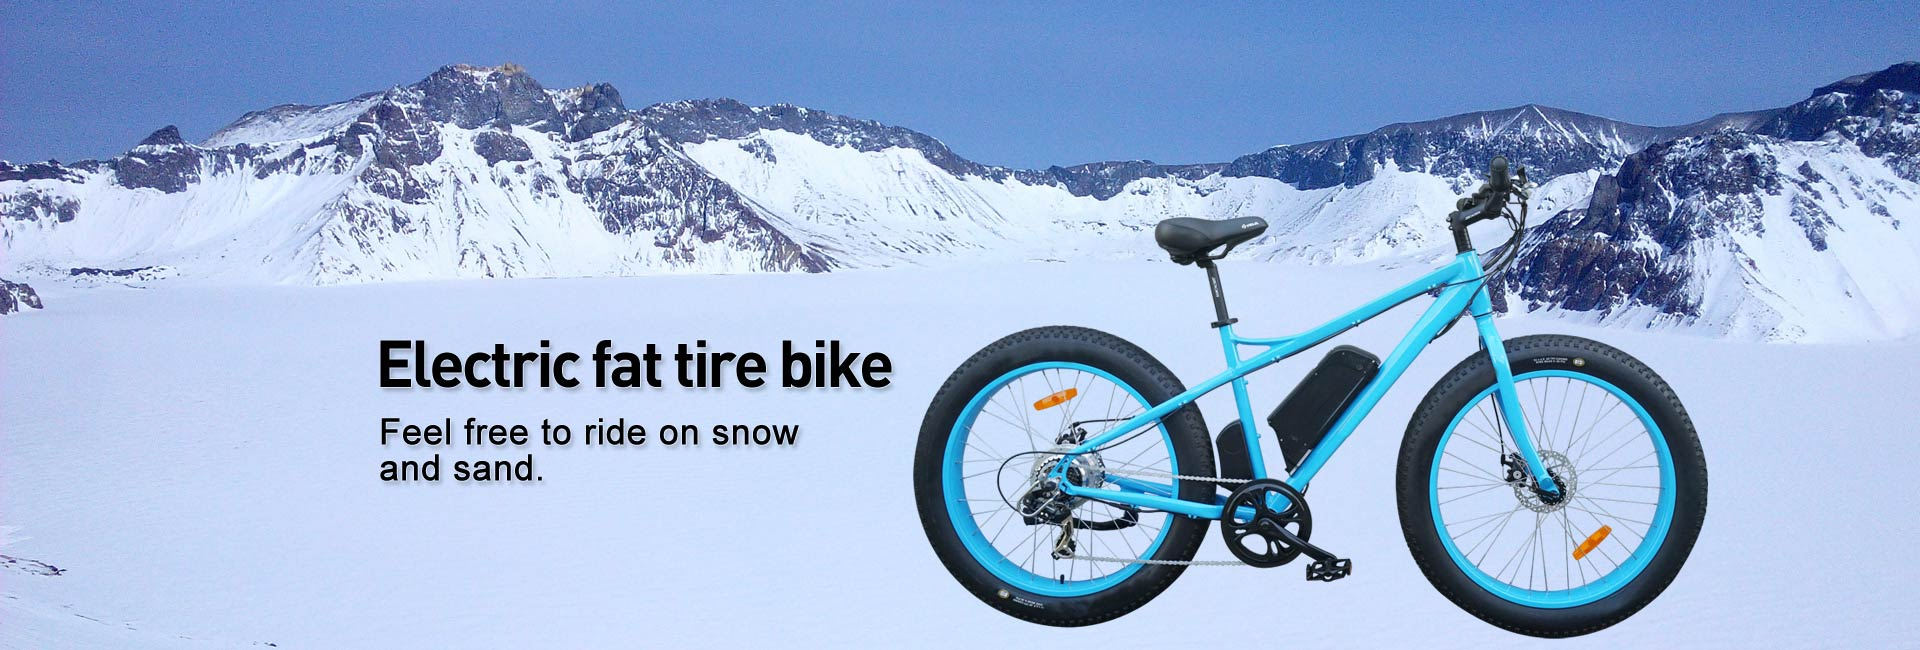 electric flat tire bike